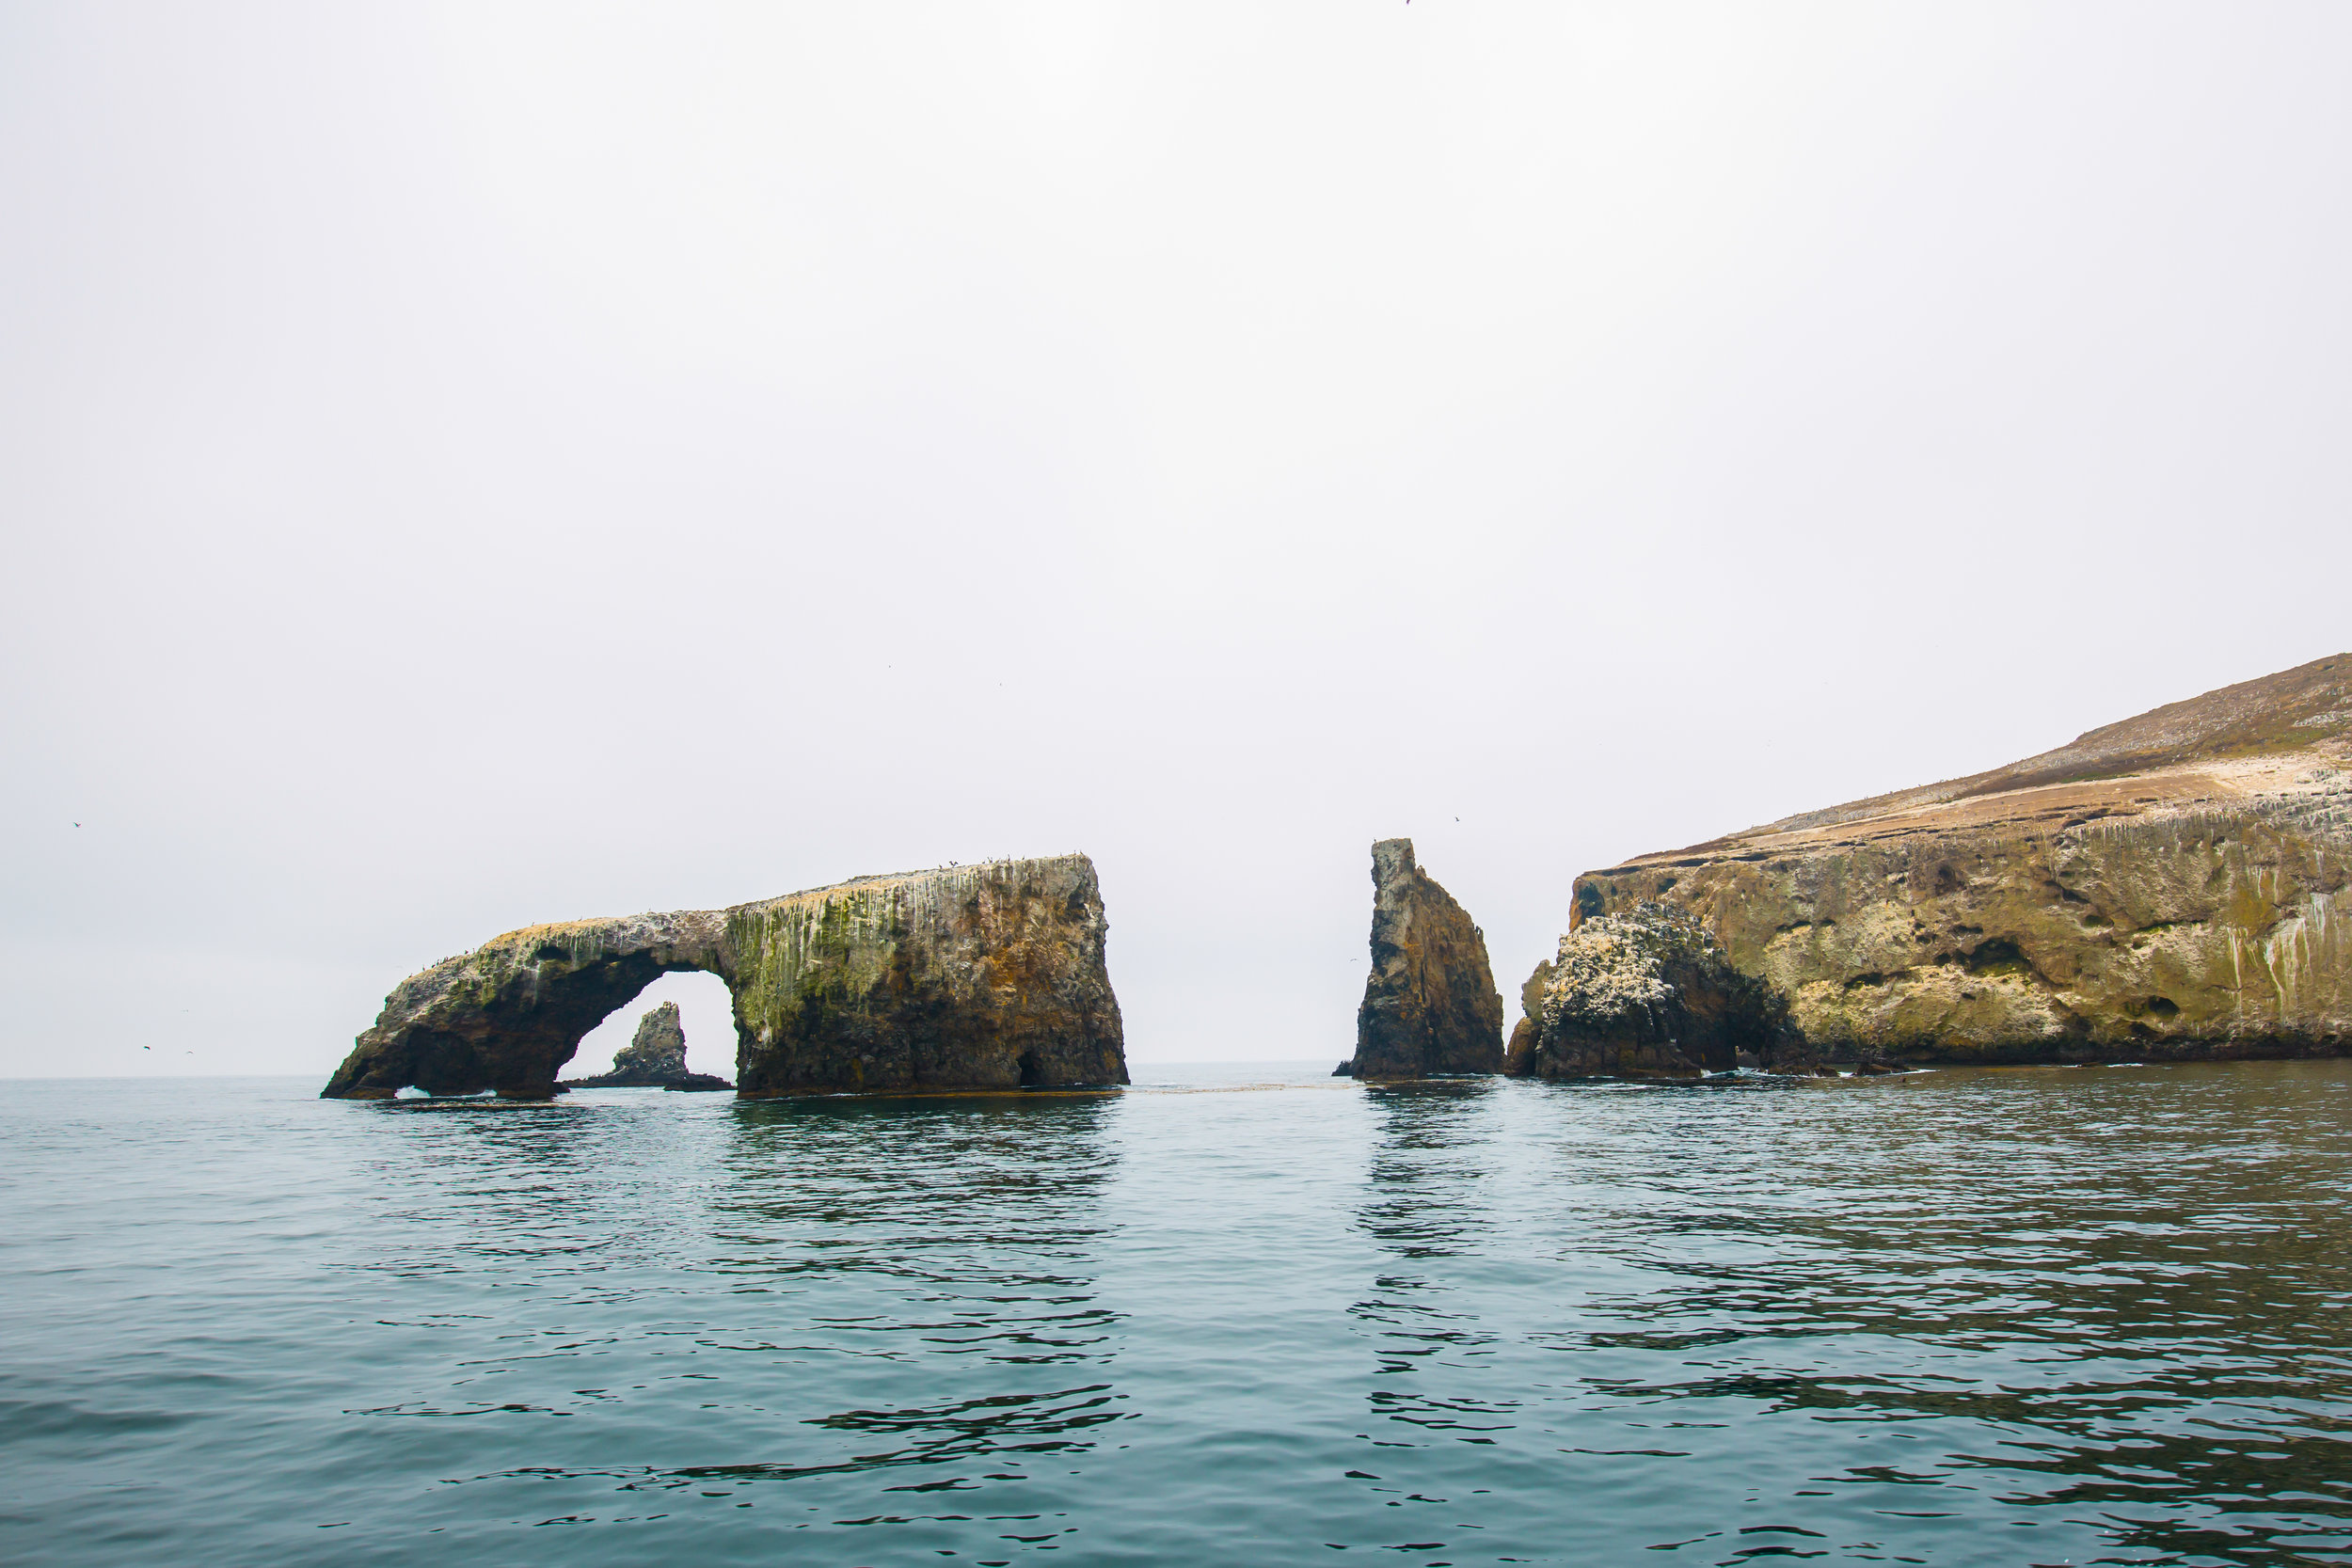 Channel Islands National Park, Anacapa Island, Arch Rock, Island Packers, California National Parks